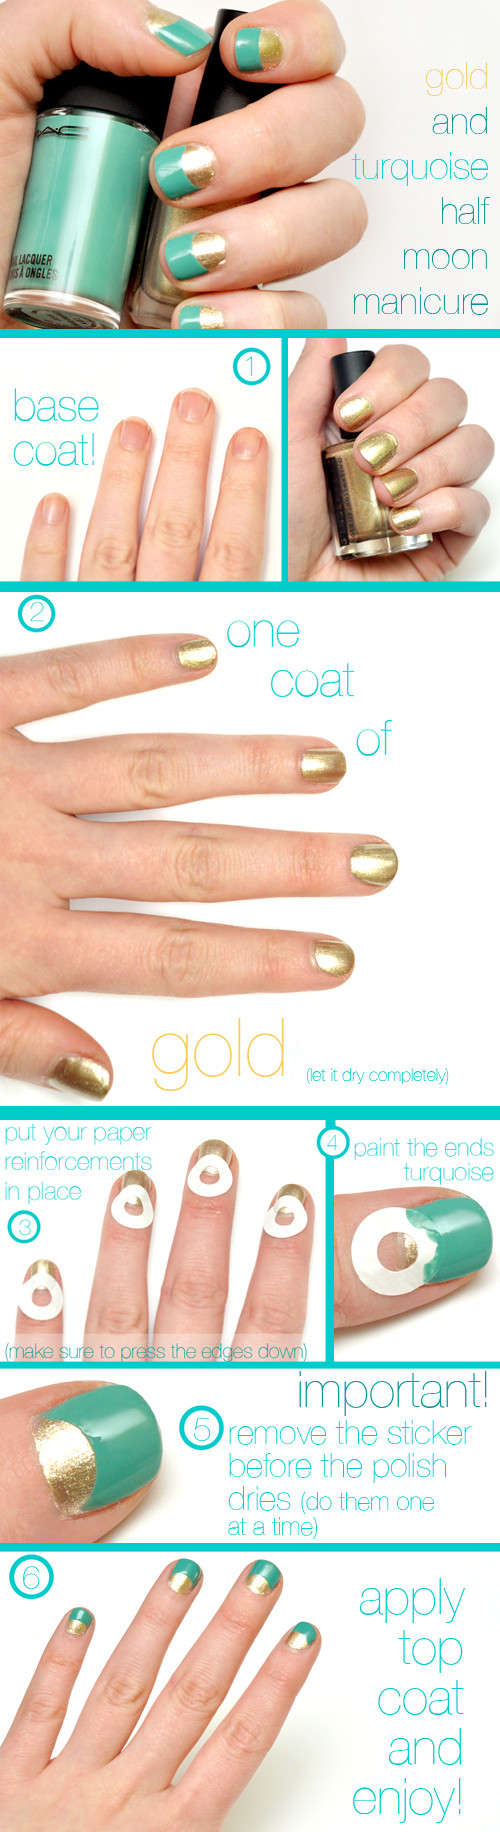 Gold and Turquoise Half Moon Nails - Imgur